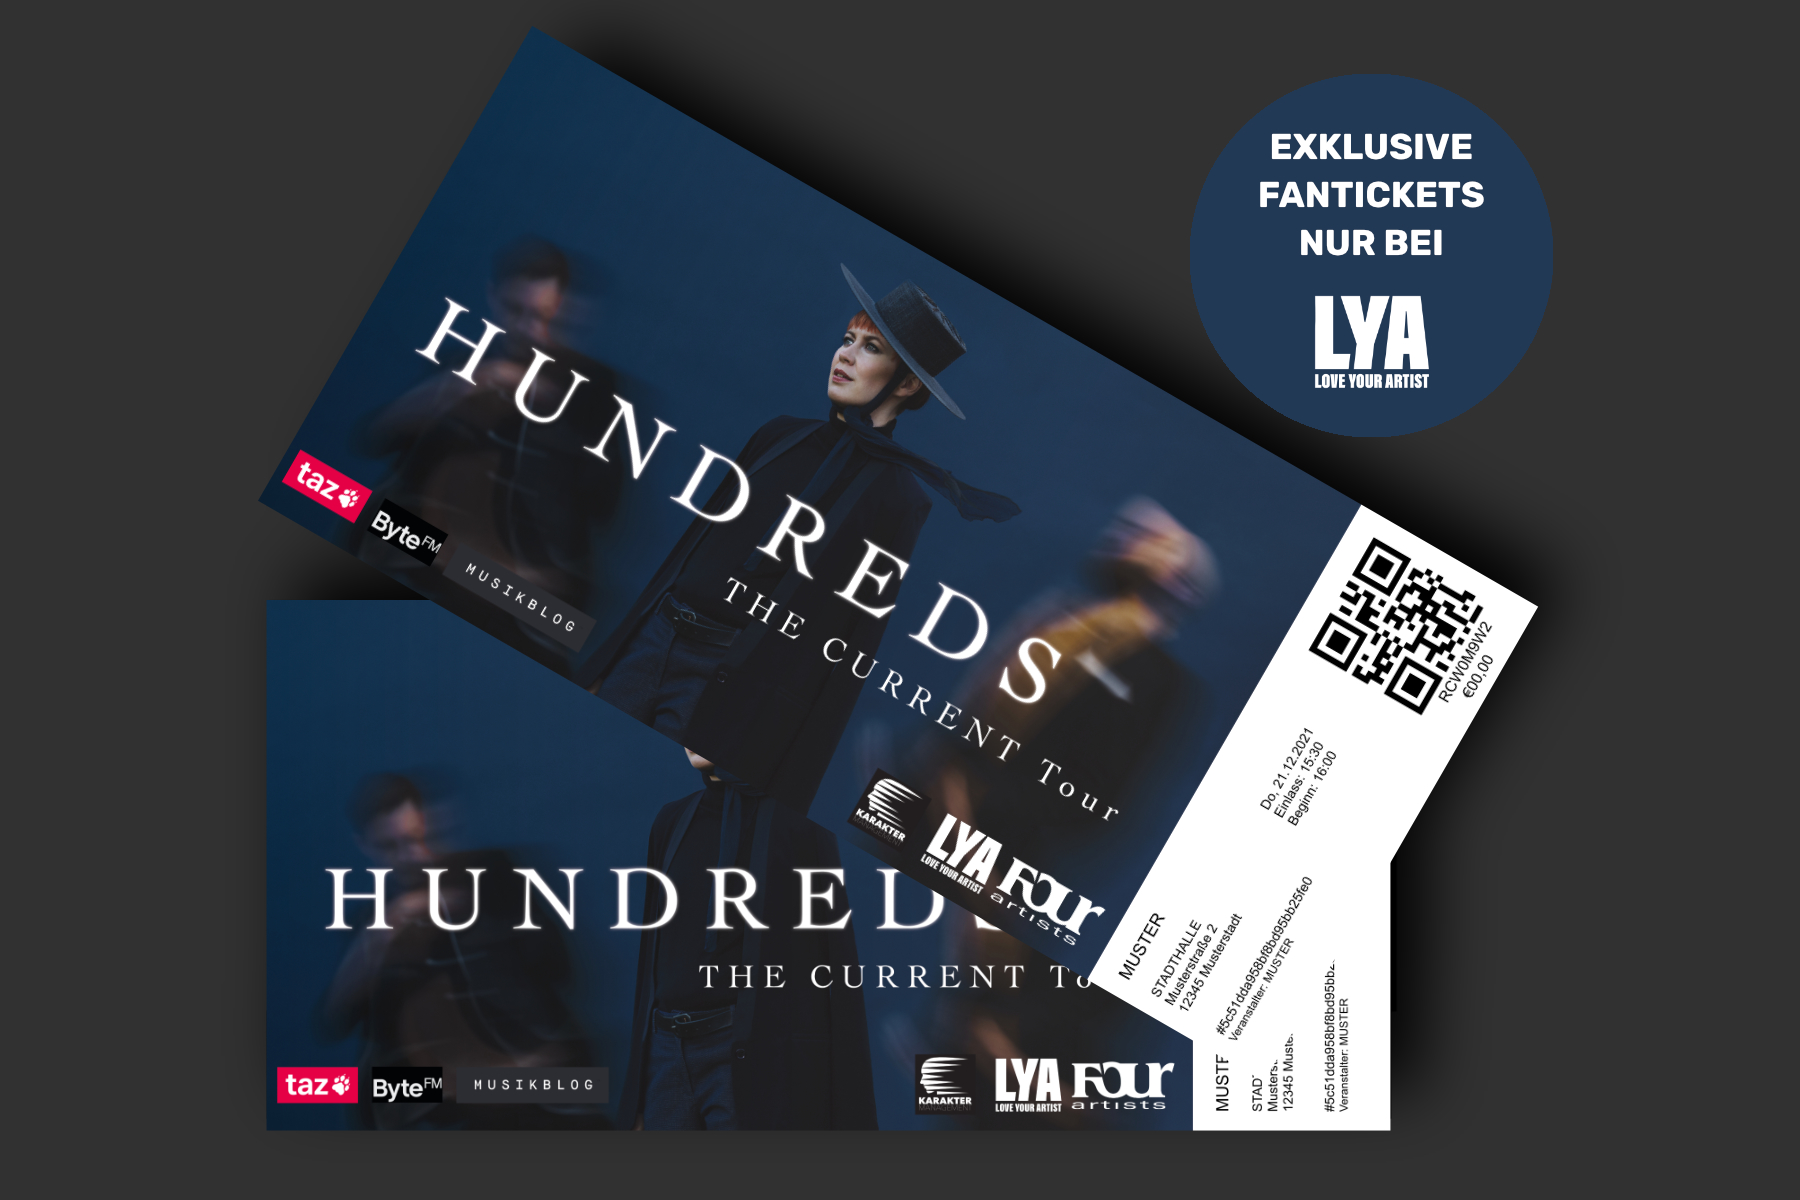 Hundreds Hardtickets